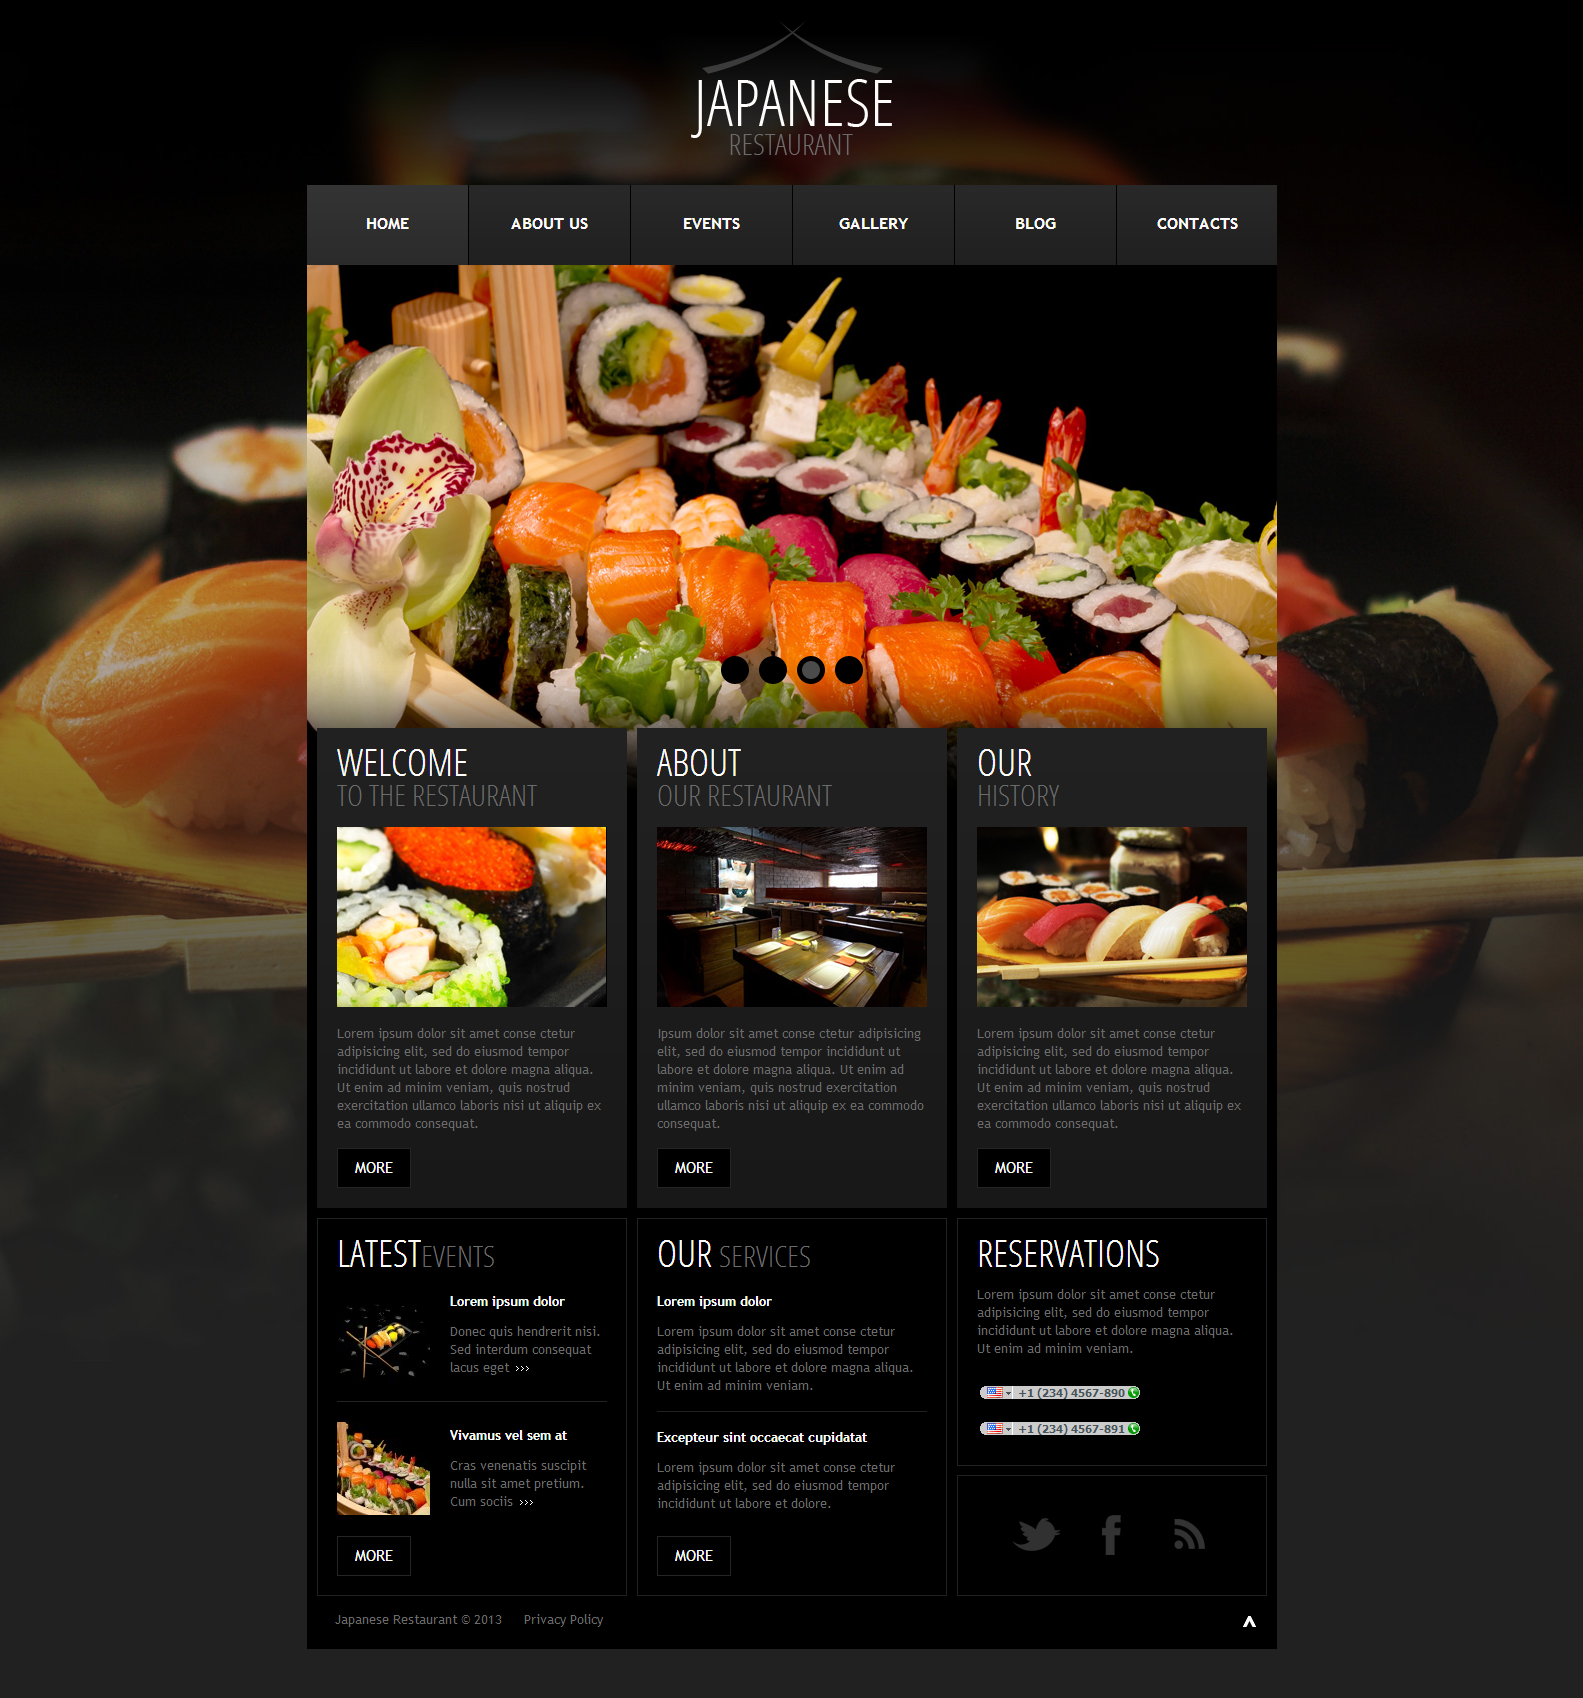 Japanese restaurant menu design for Cuisine site